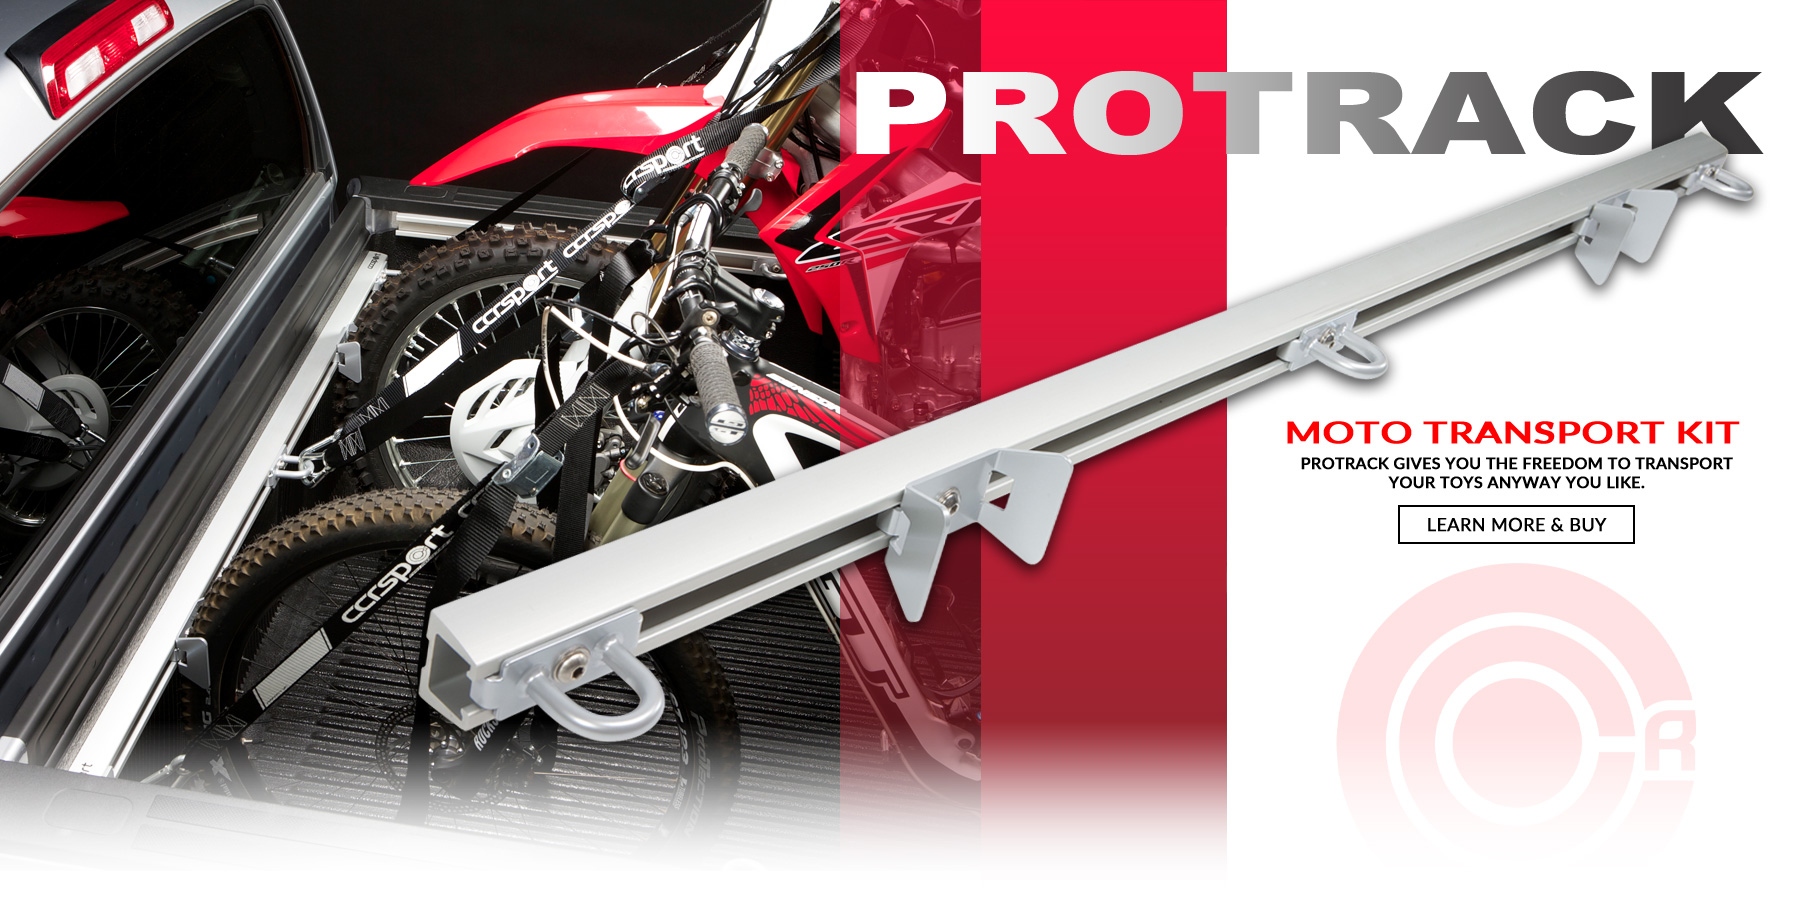 THe ProTrack Moto Transport Kit gives you the dreedom to transport your toys anyway you like.